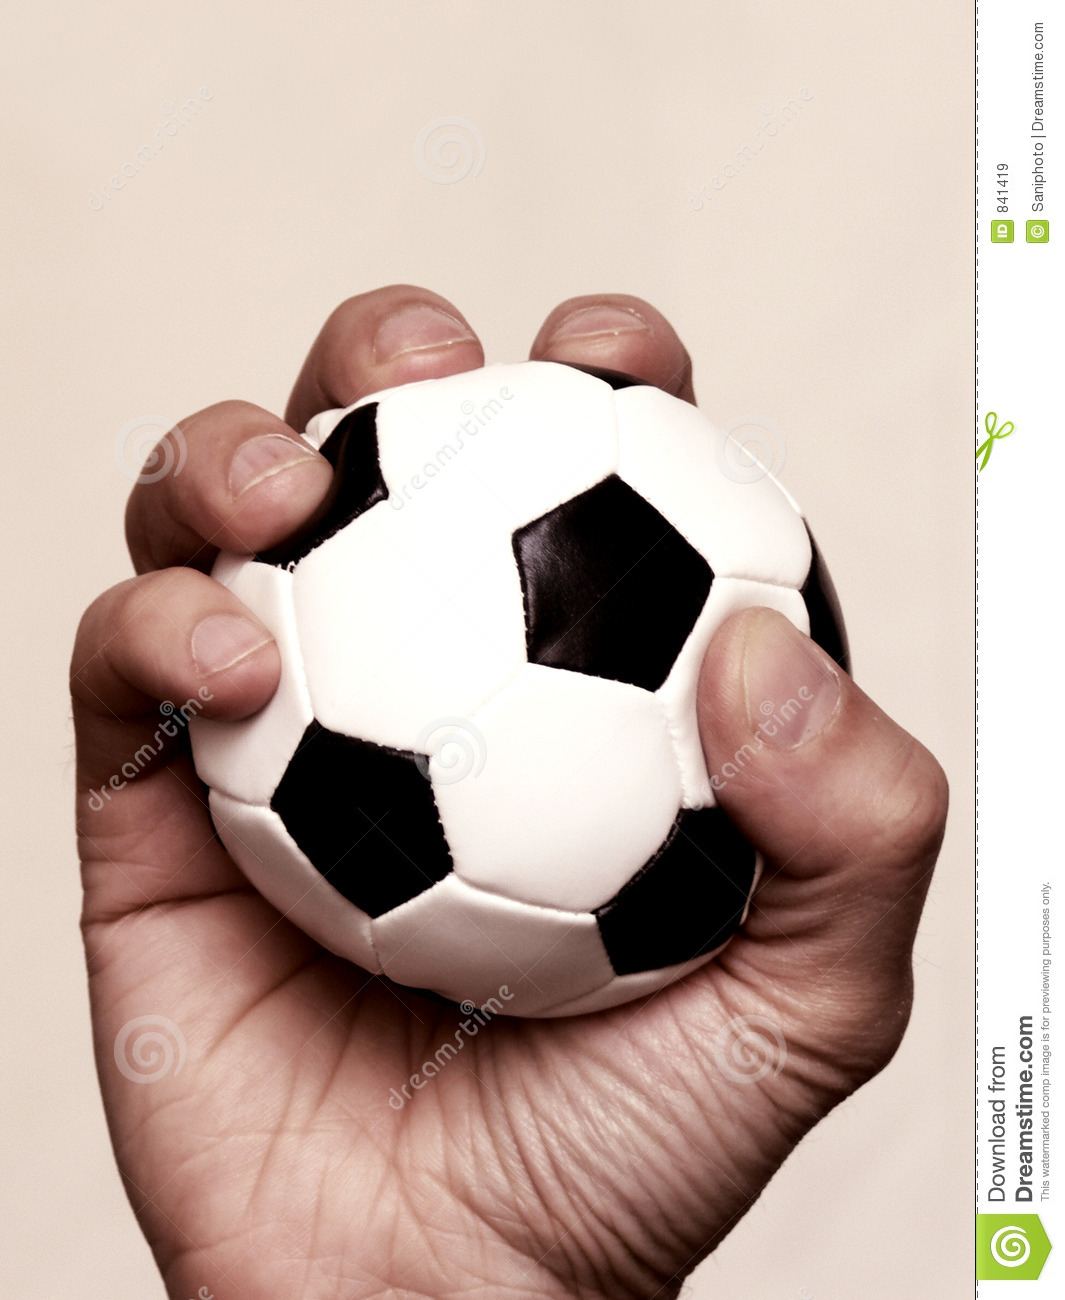 Hand Holding Soccer Ball Royalty Free Stock Images - Image: 841419